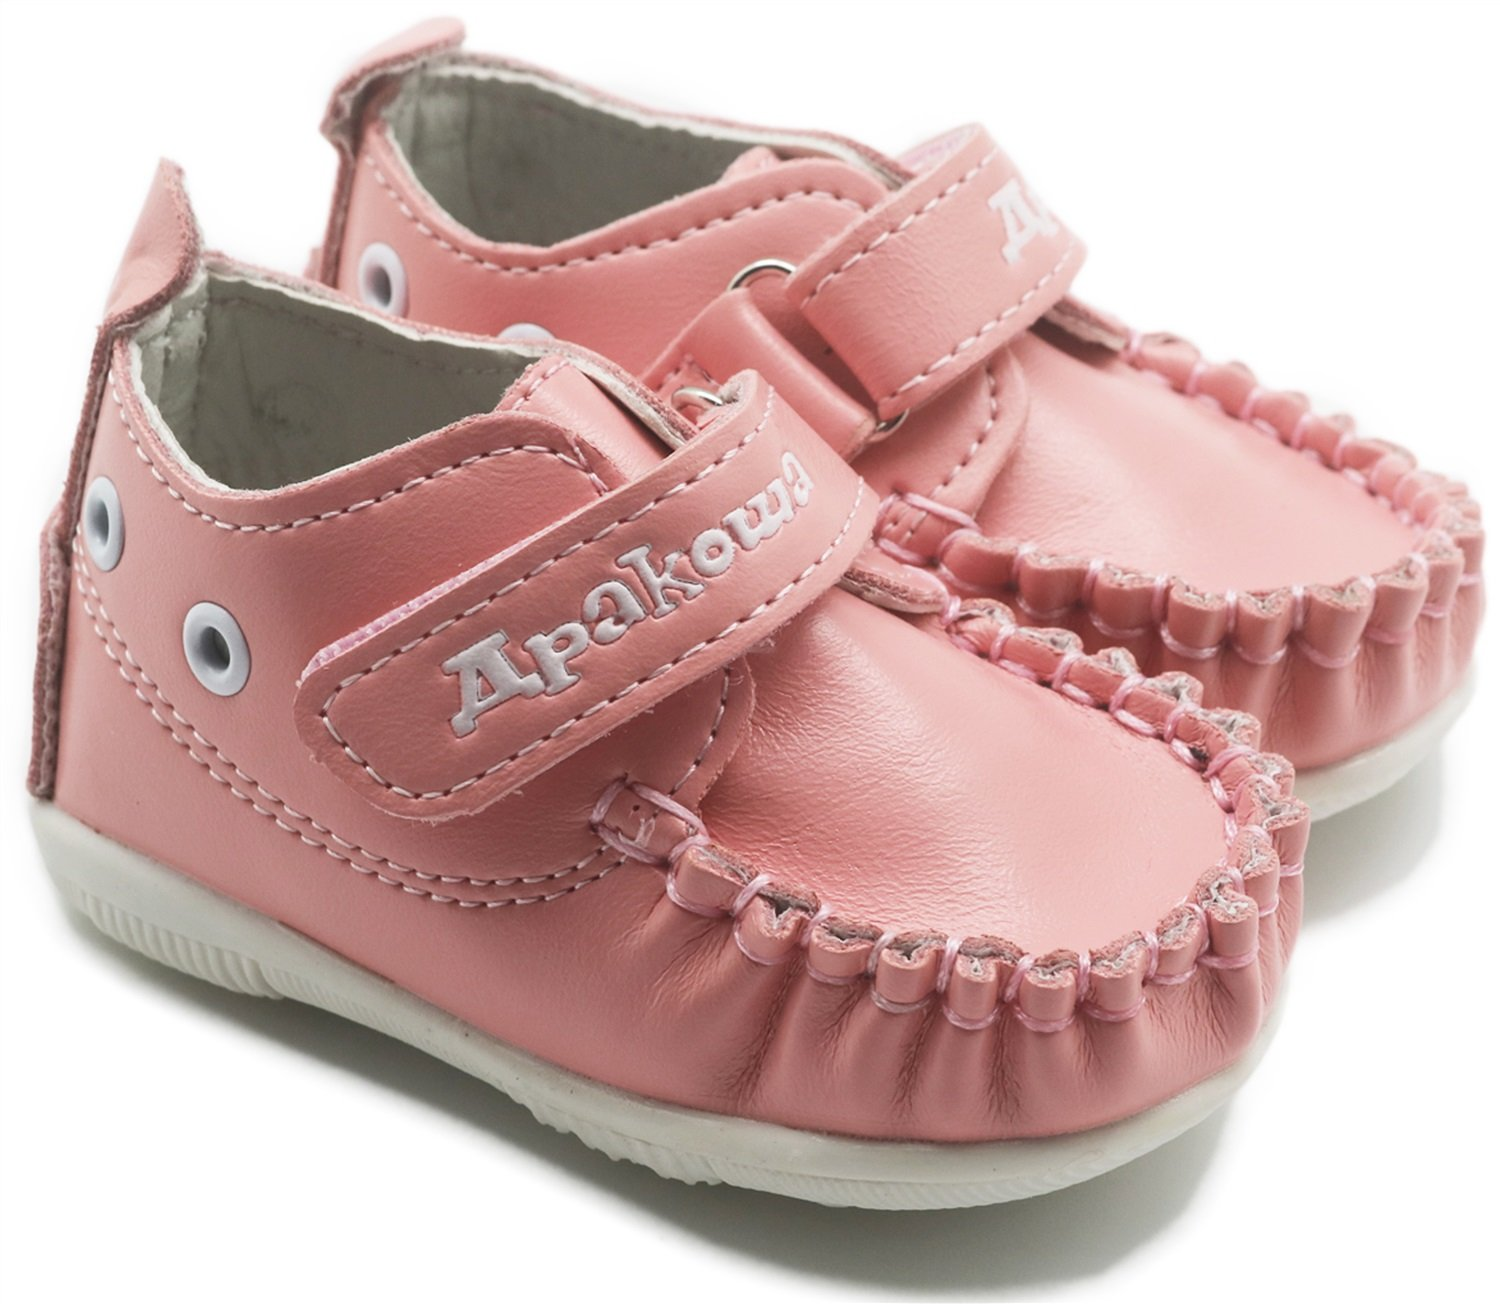 Dig dog bone Boys Girls Rubber Sole Sneaker First Walkers Shoes Infant Casual Shoes Color : Pink, Size : 3.5 M US Toddler